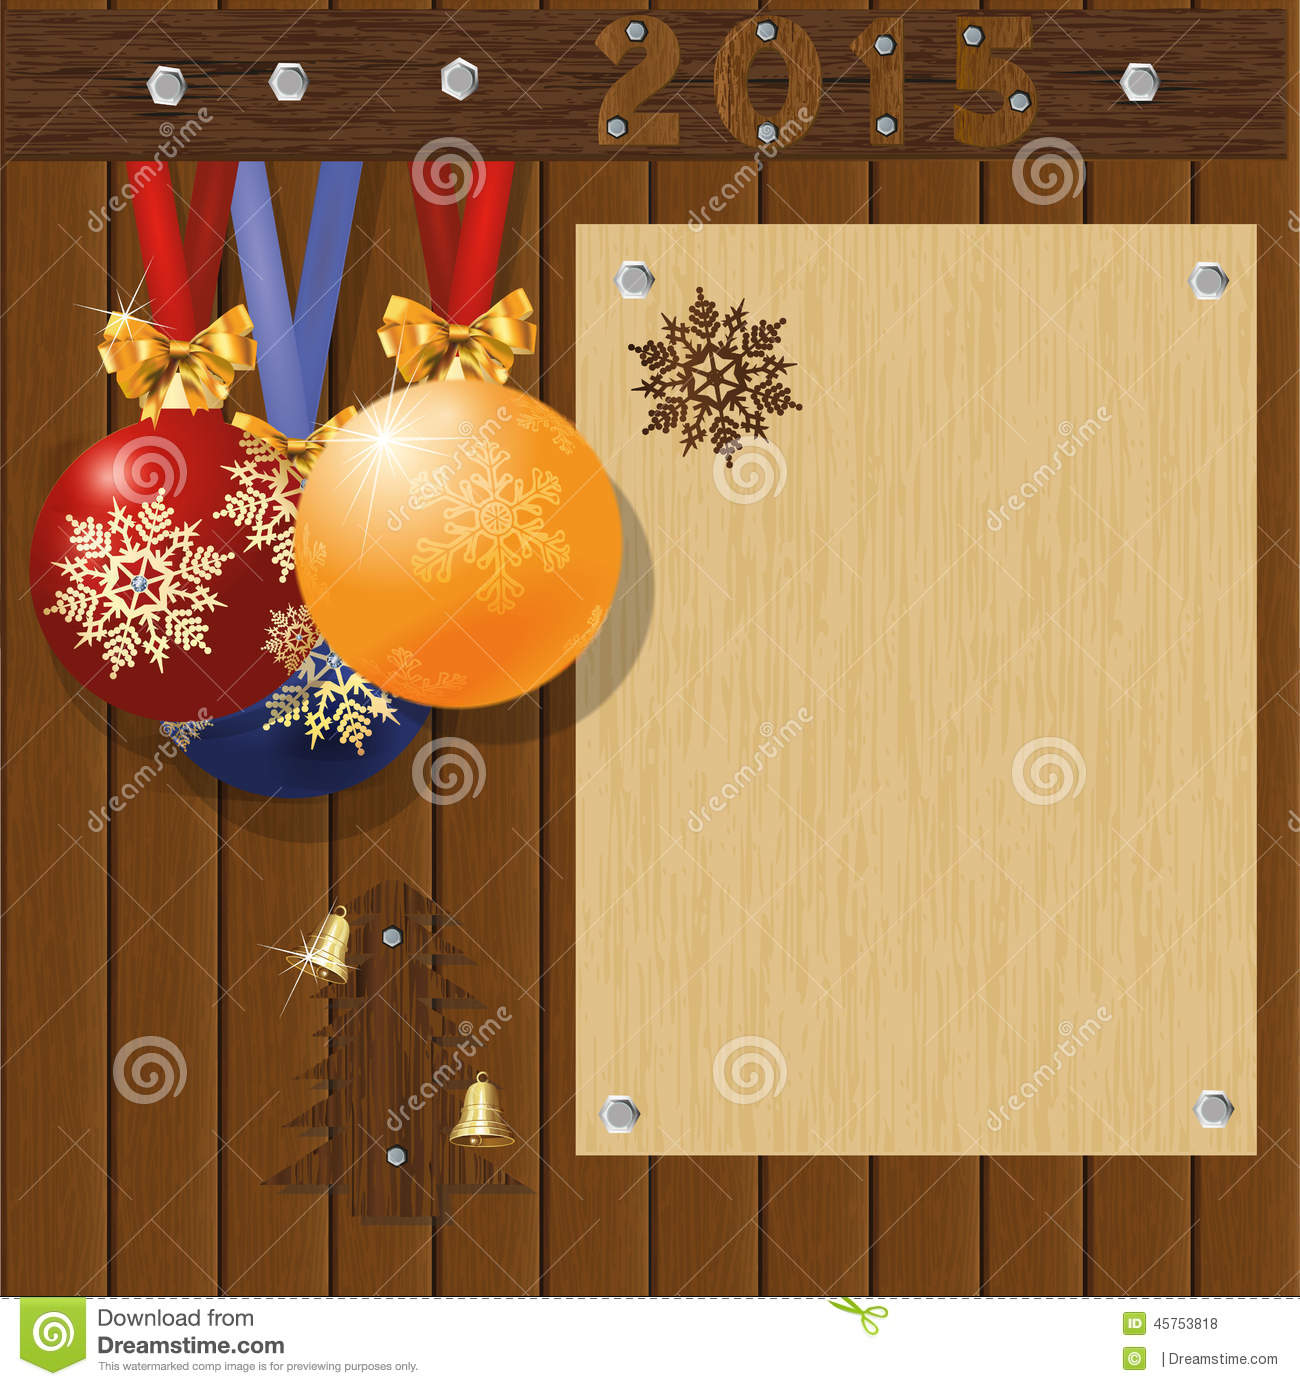 merry christmas and happy new year greeting card board with balls